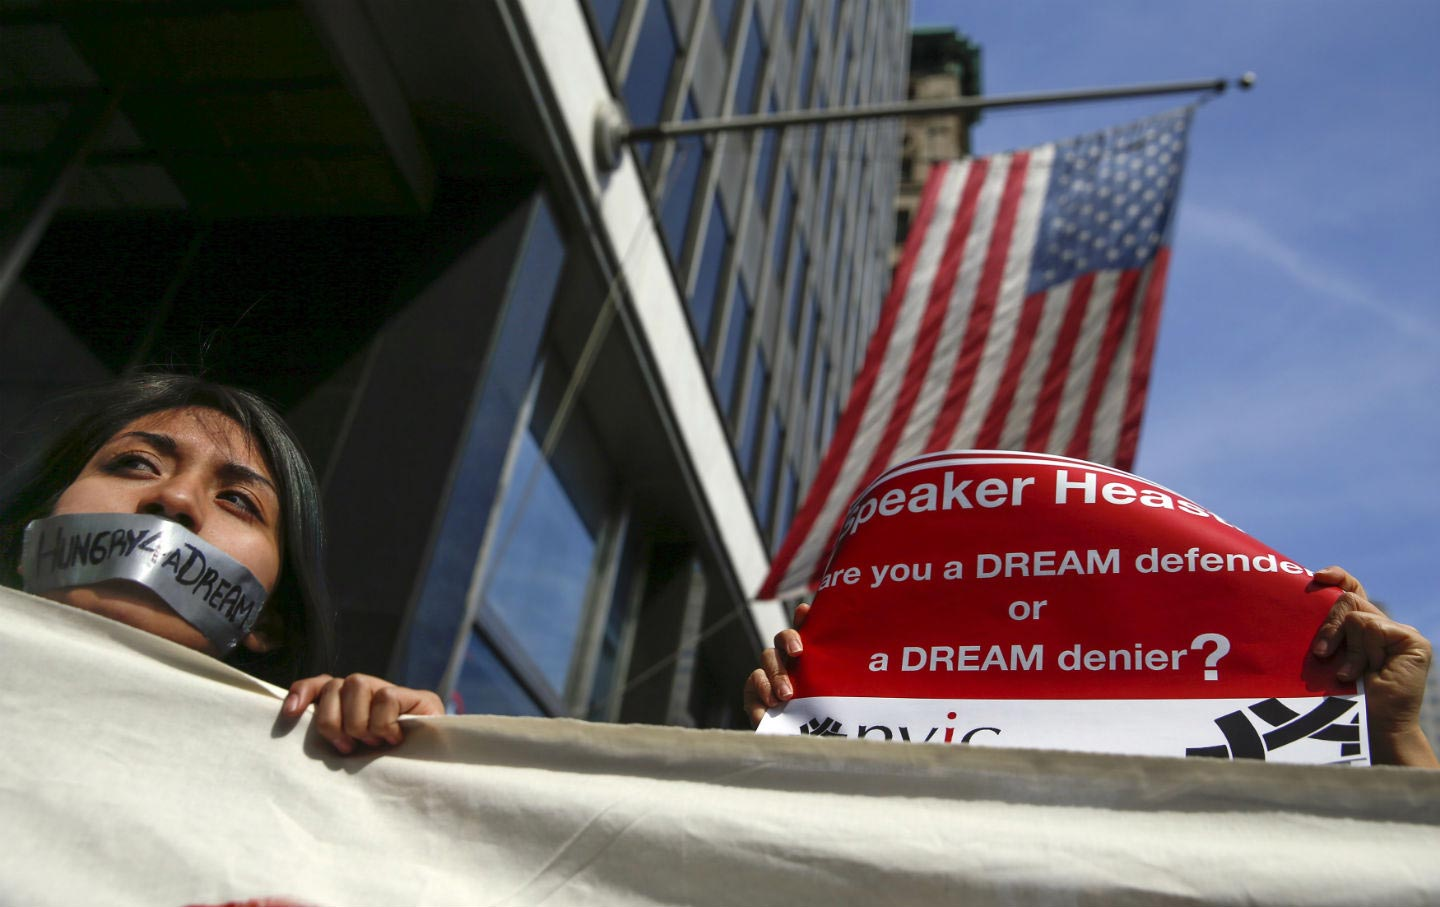 DREAMer to be deported without hearing after speaking to the press